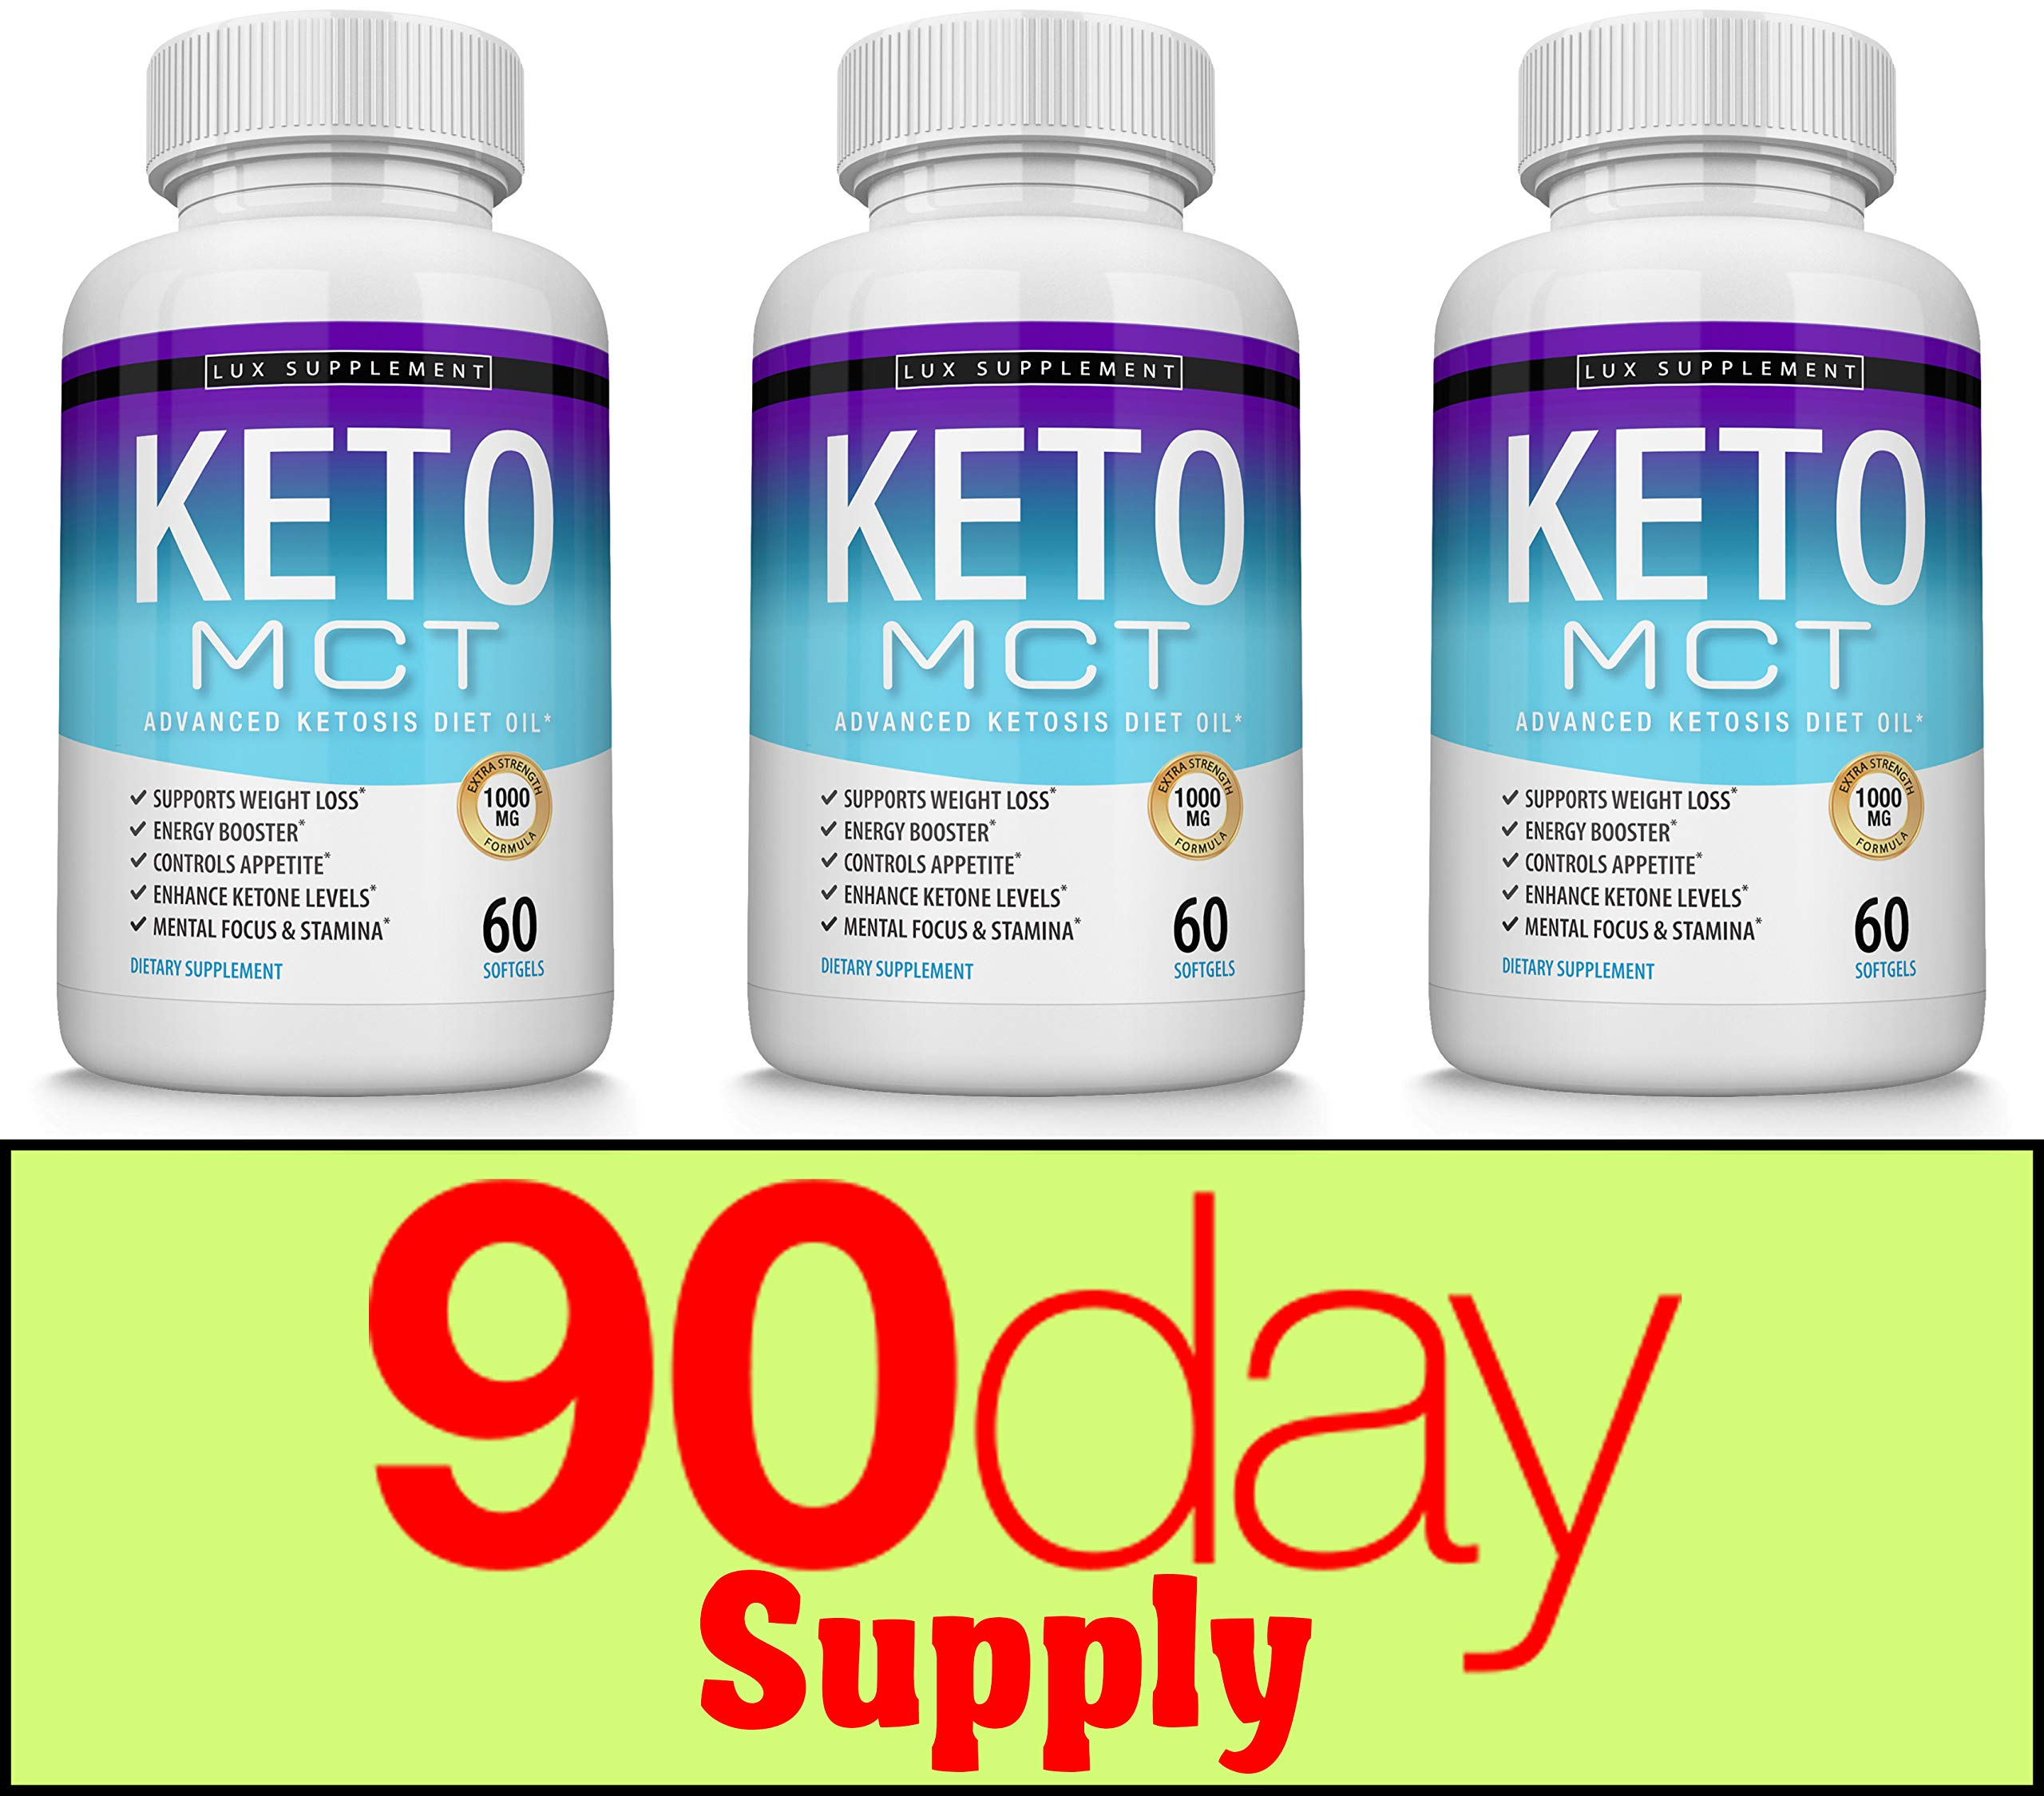 Keto Mct Oil Softgels Advanced Ketosis Diet - 1000 Mg Natural Pure Coconut Oil Extract Pills for Ketogenic & Ketone Diet, Easy to Digest Fuel for Energy & Brain, Men Women, 60 Softgels, Lux Supplement